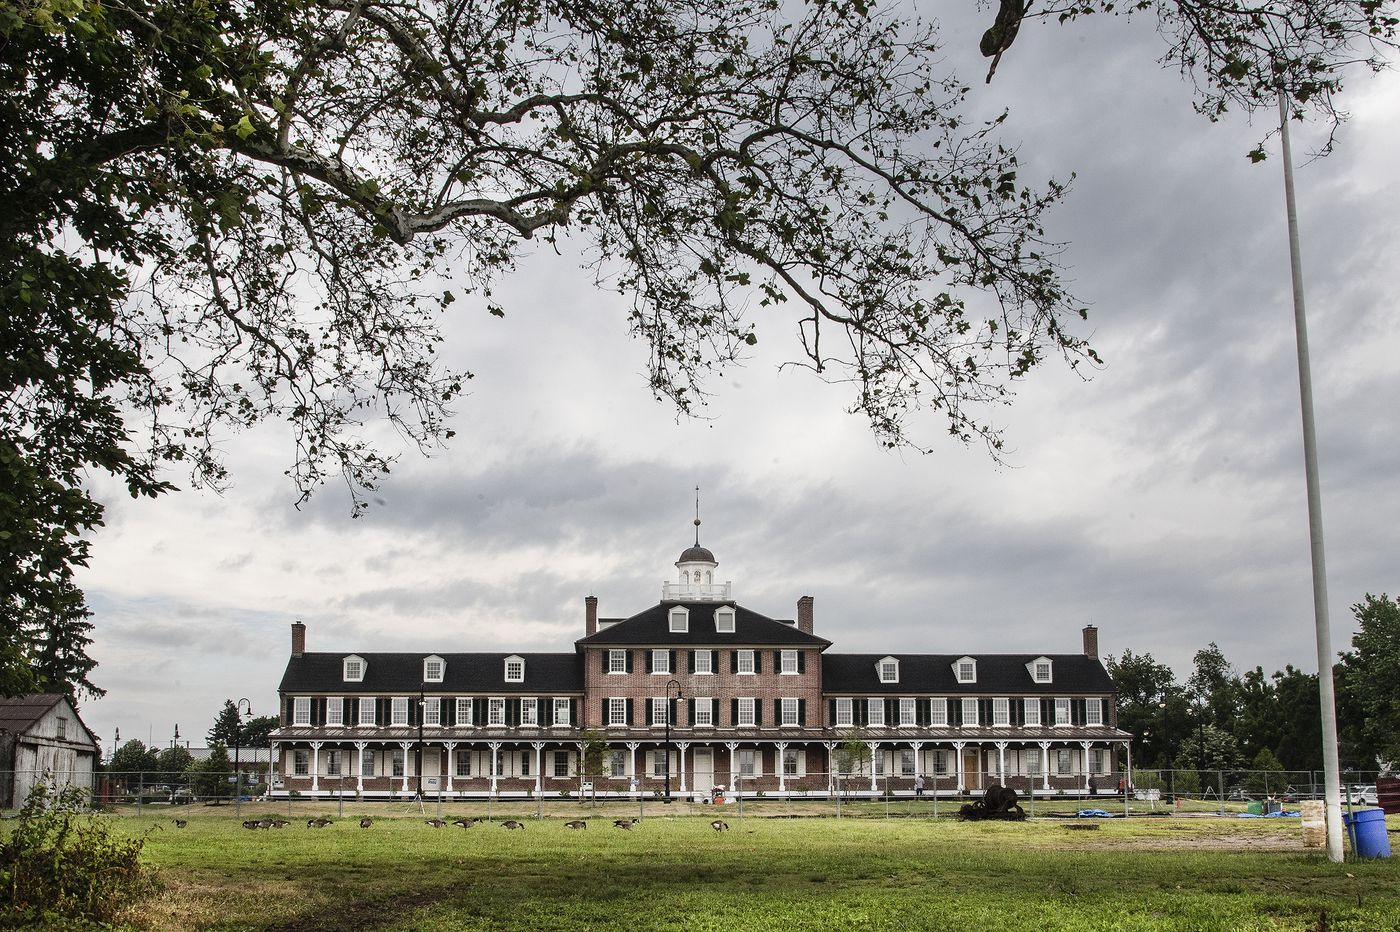 This building on the Delaware River saved immigrant lives for 95 years. Now it's been rescued by Tinicum Twp. | Inga Saffron